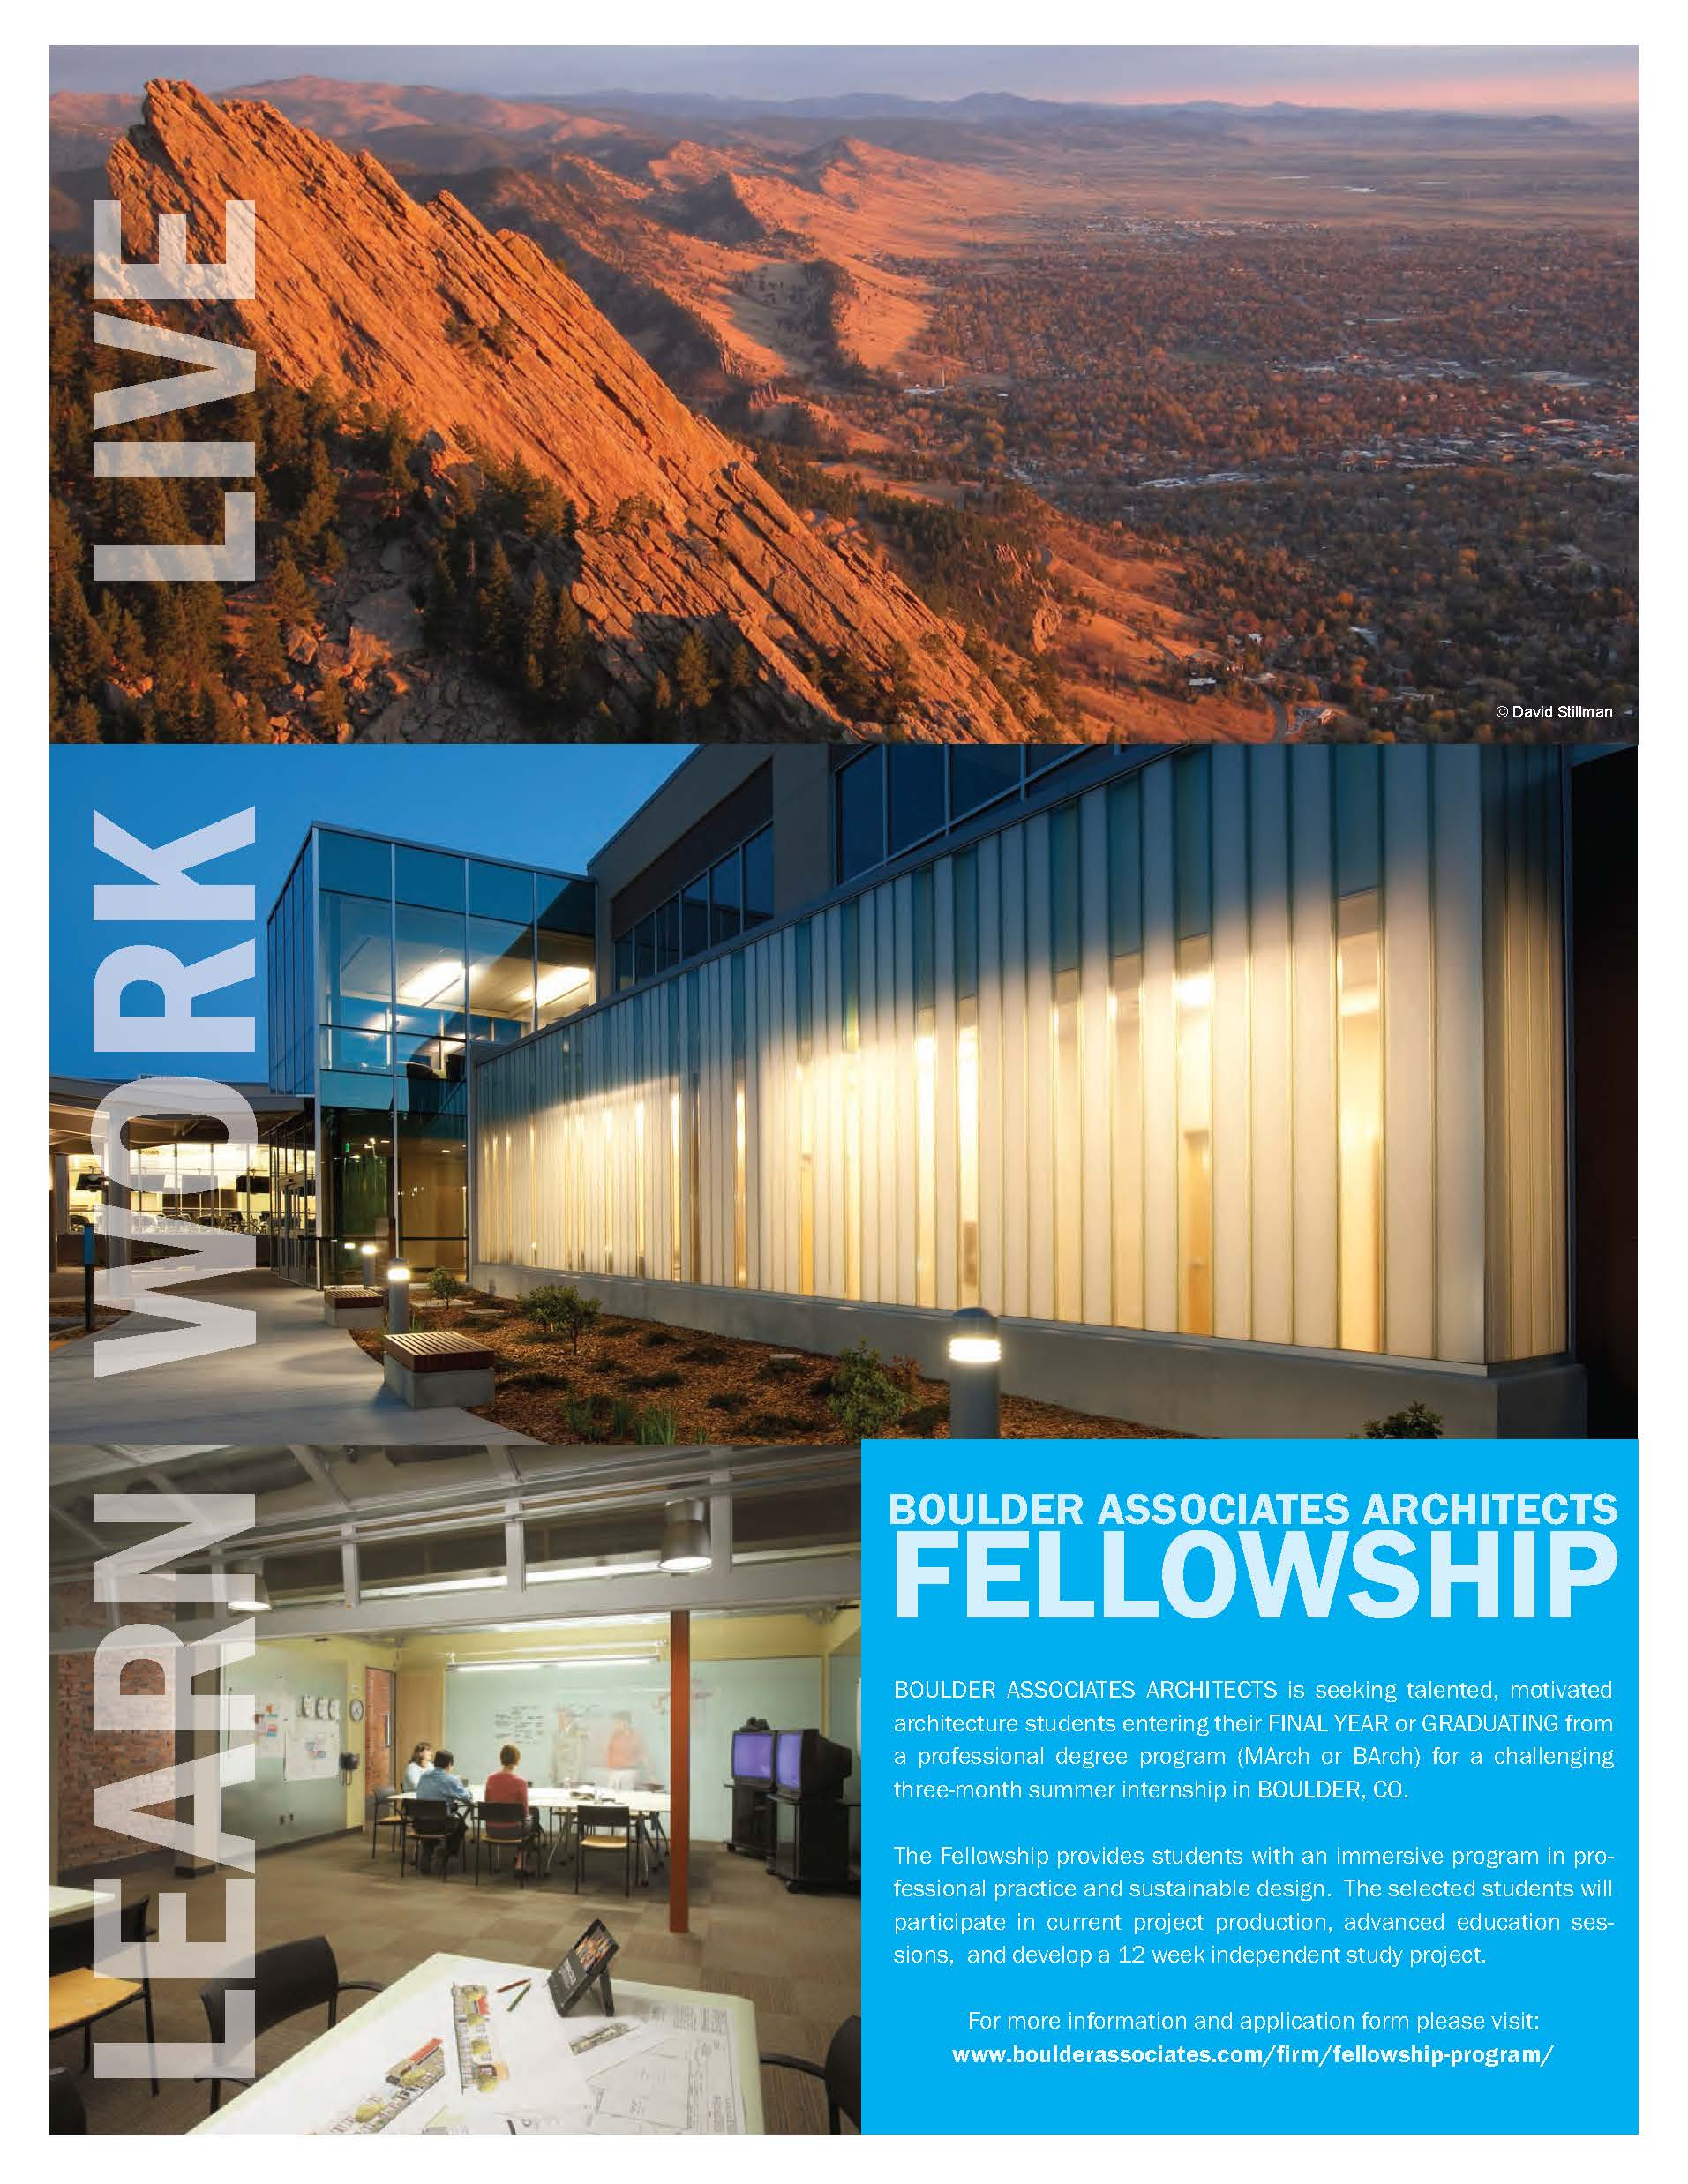 2015 Boulder Associates Architects Fellowship